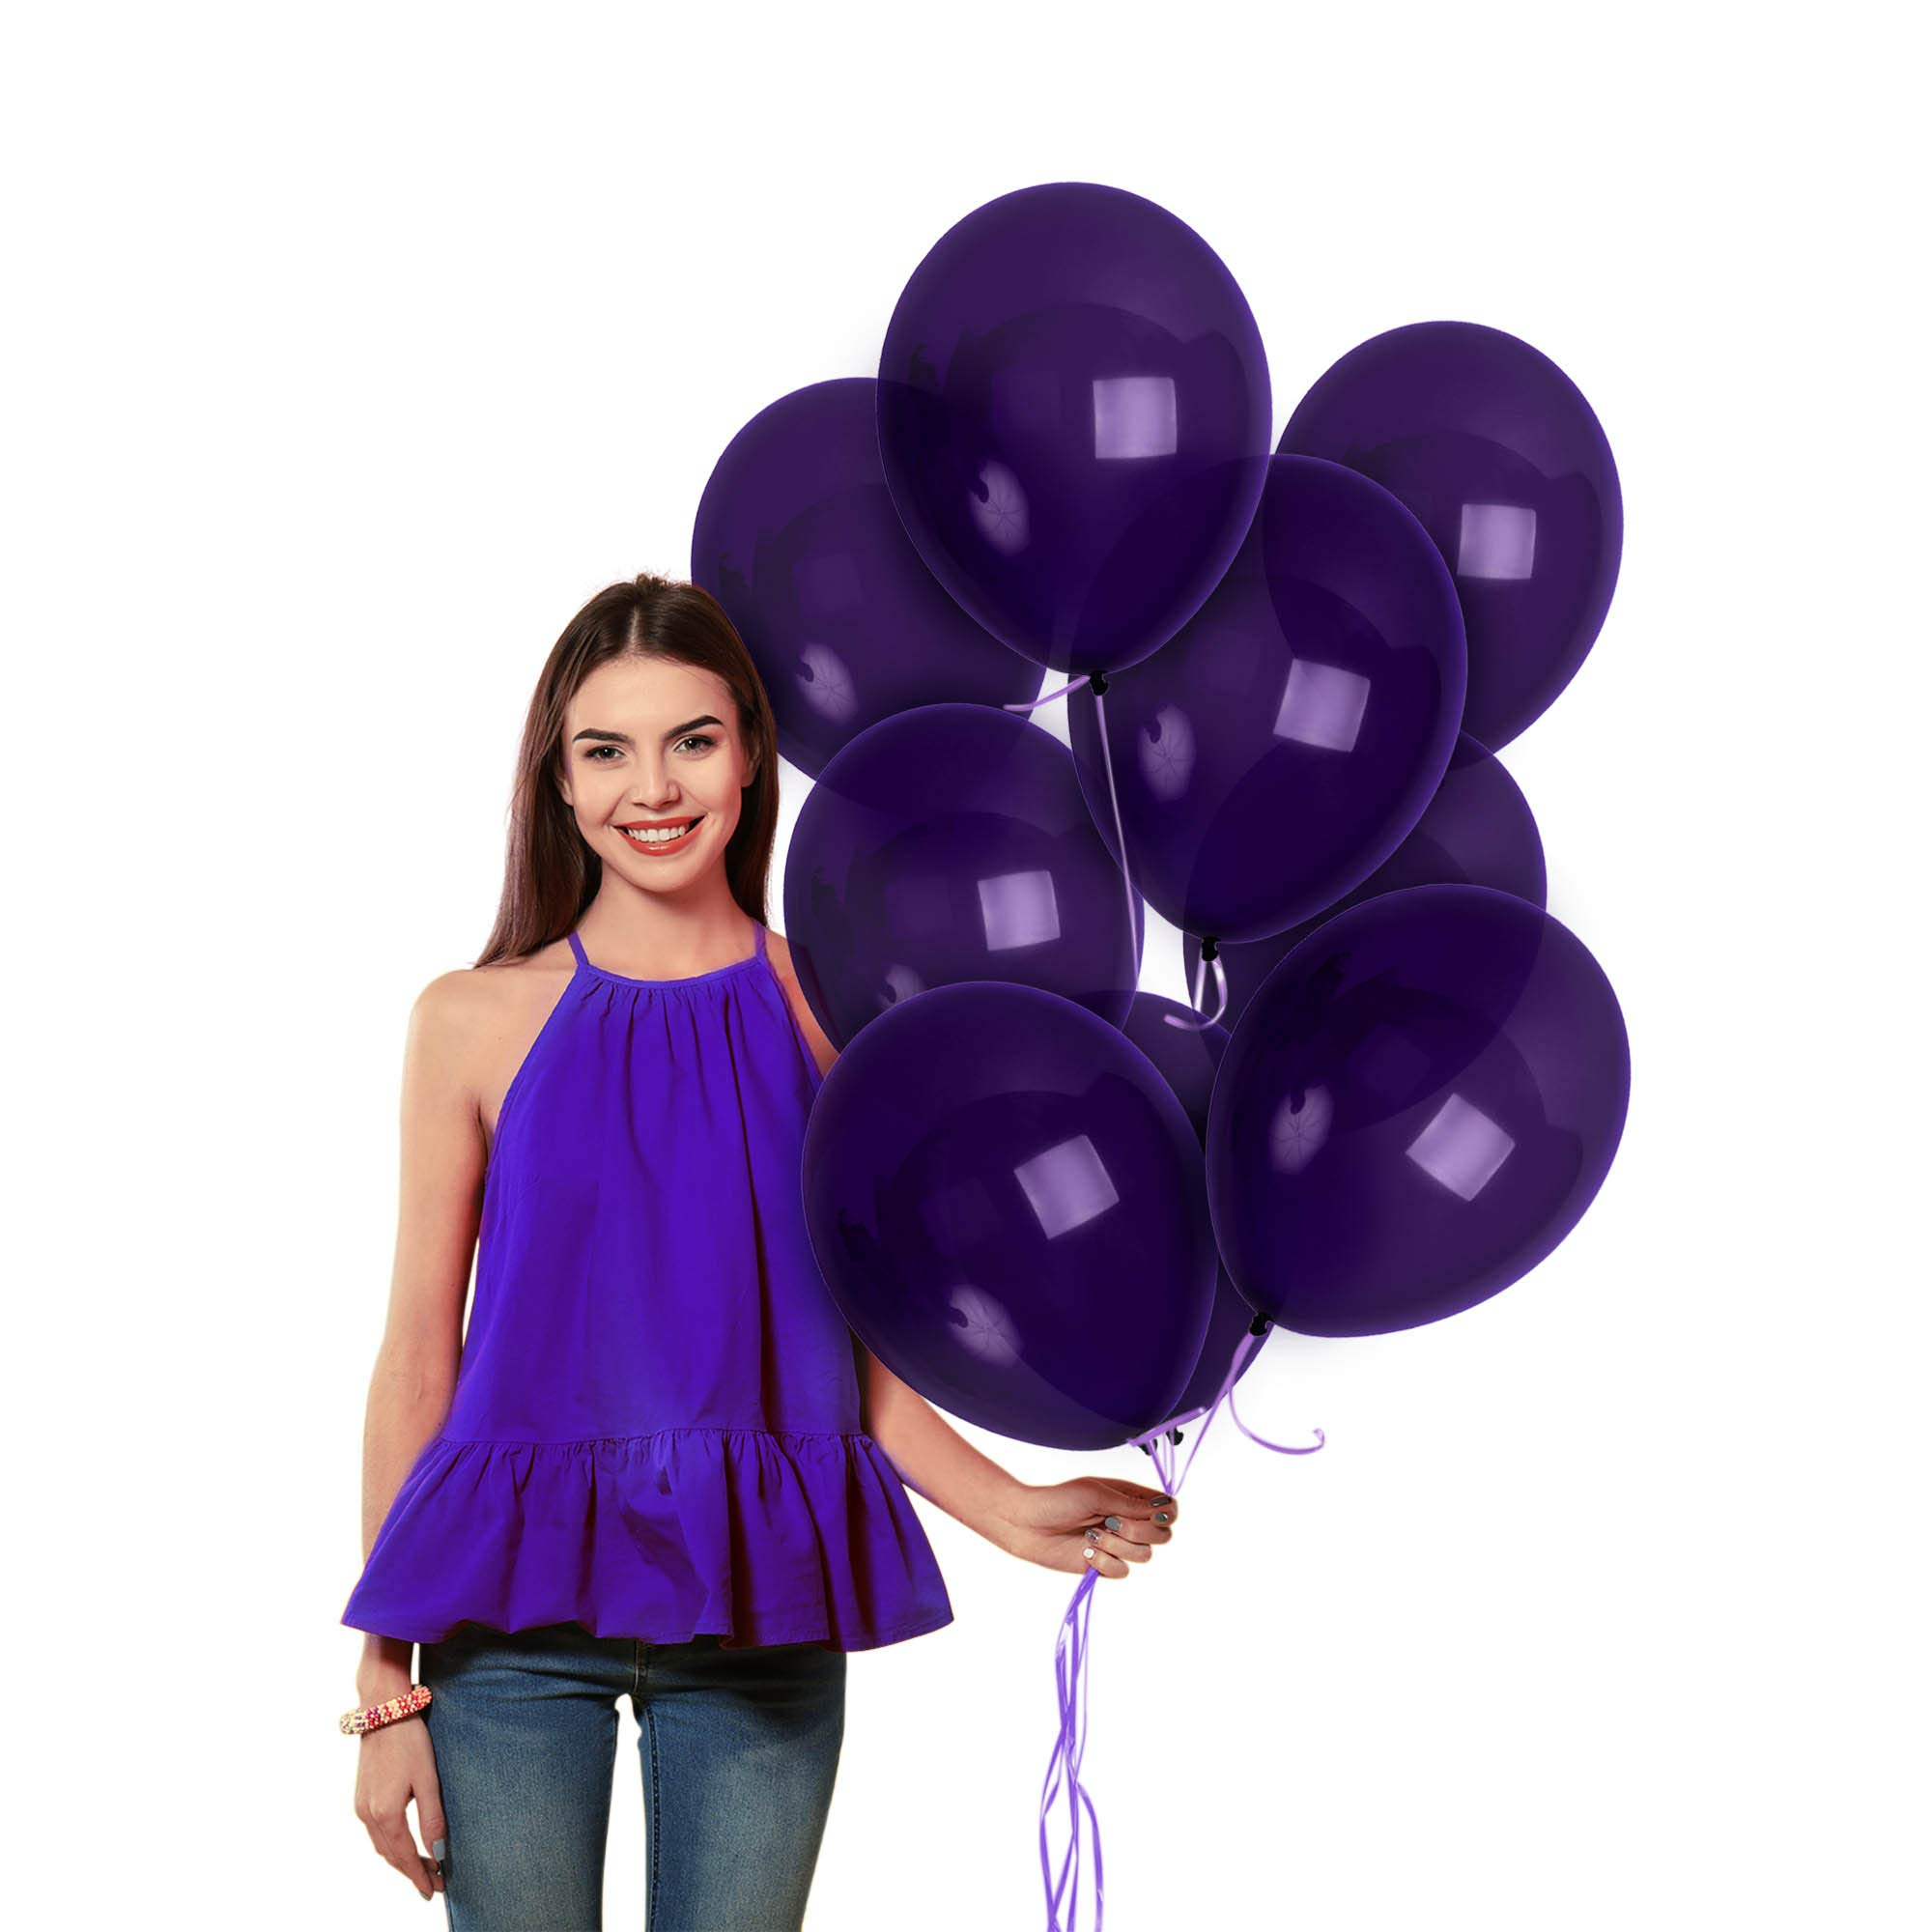 Matte Solid Dark Purple Balloons Pack of 36 Thick Opaque Violet Latex 12 Inch for Engagement Wedding Bridal Shower Bachelorette Birthday Graduation Party Supplies